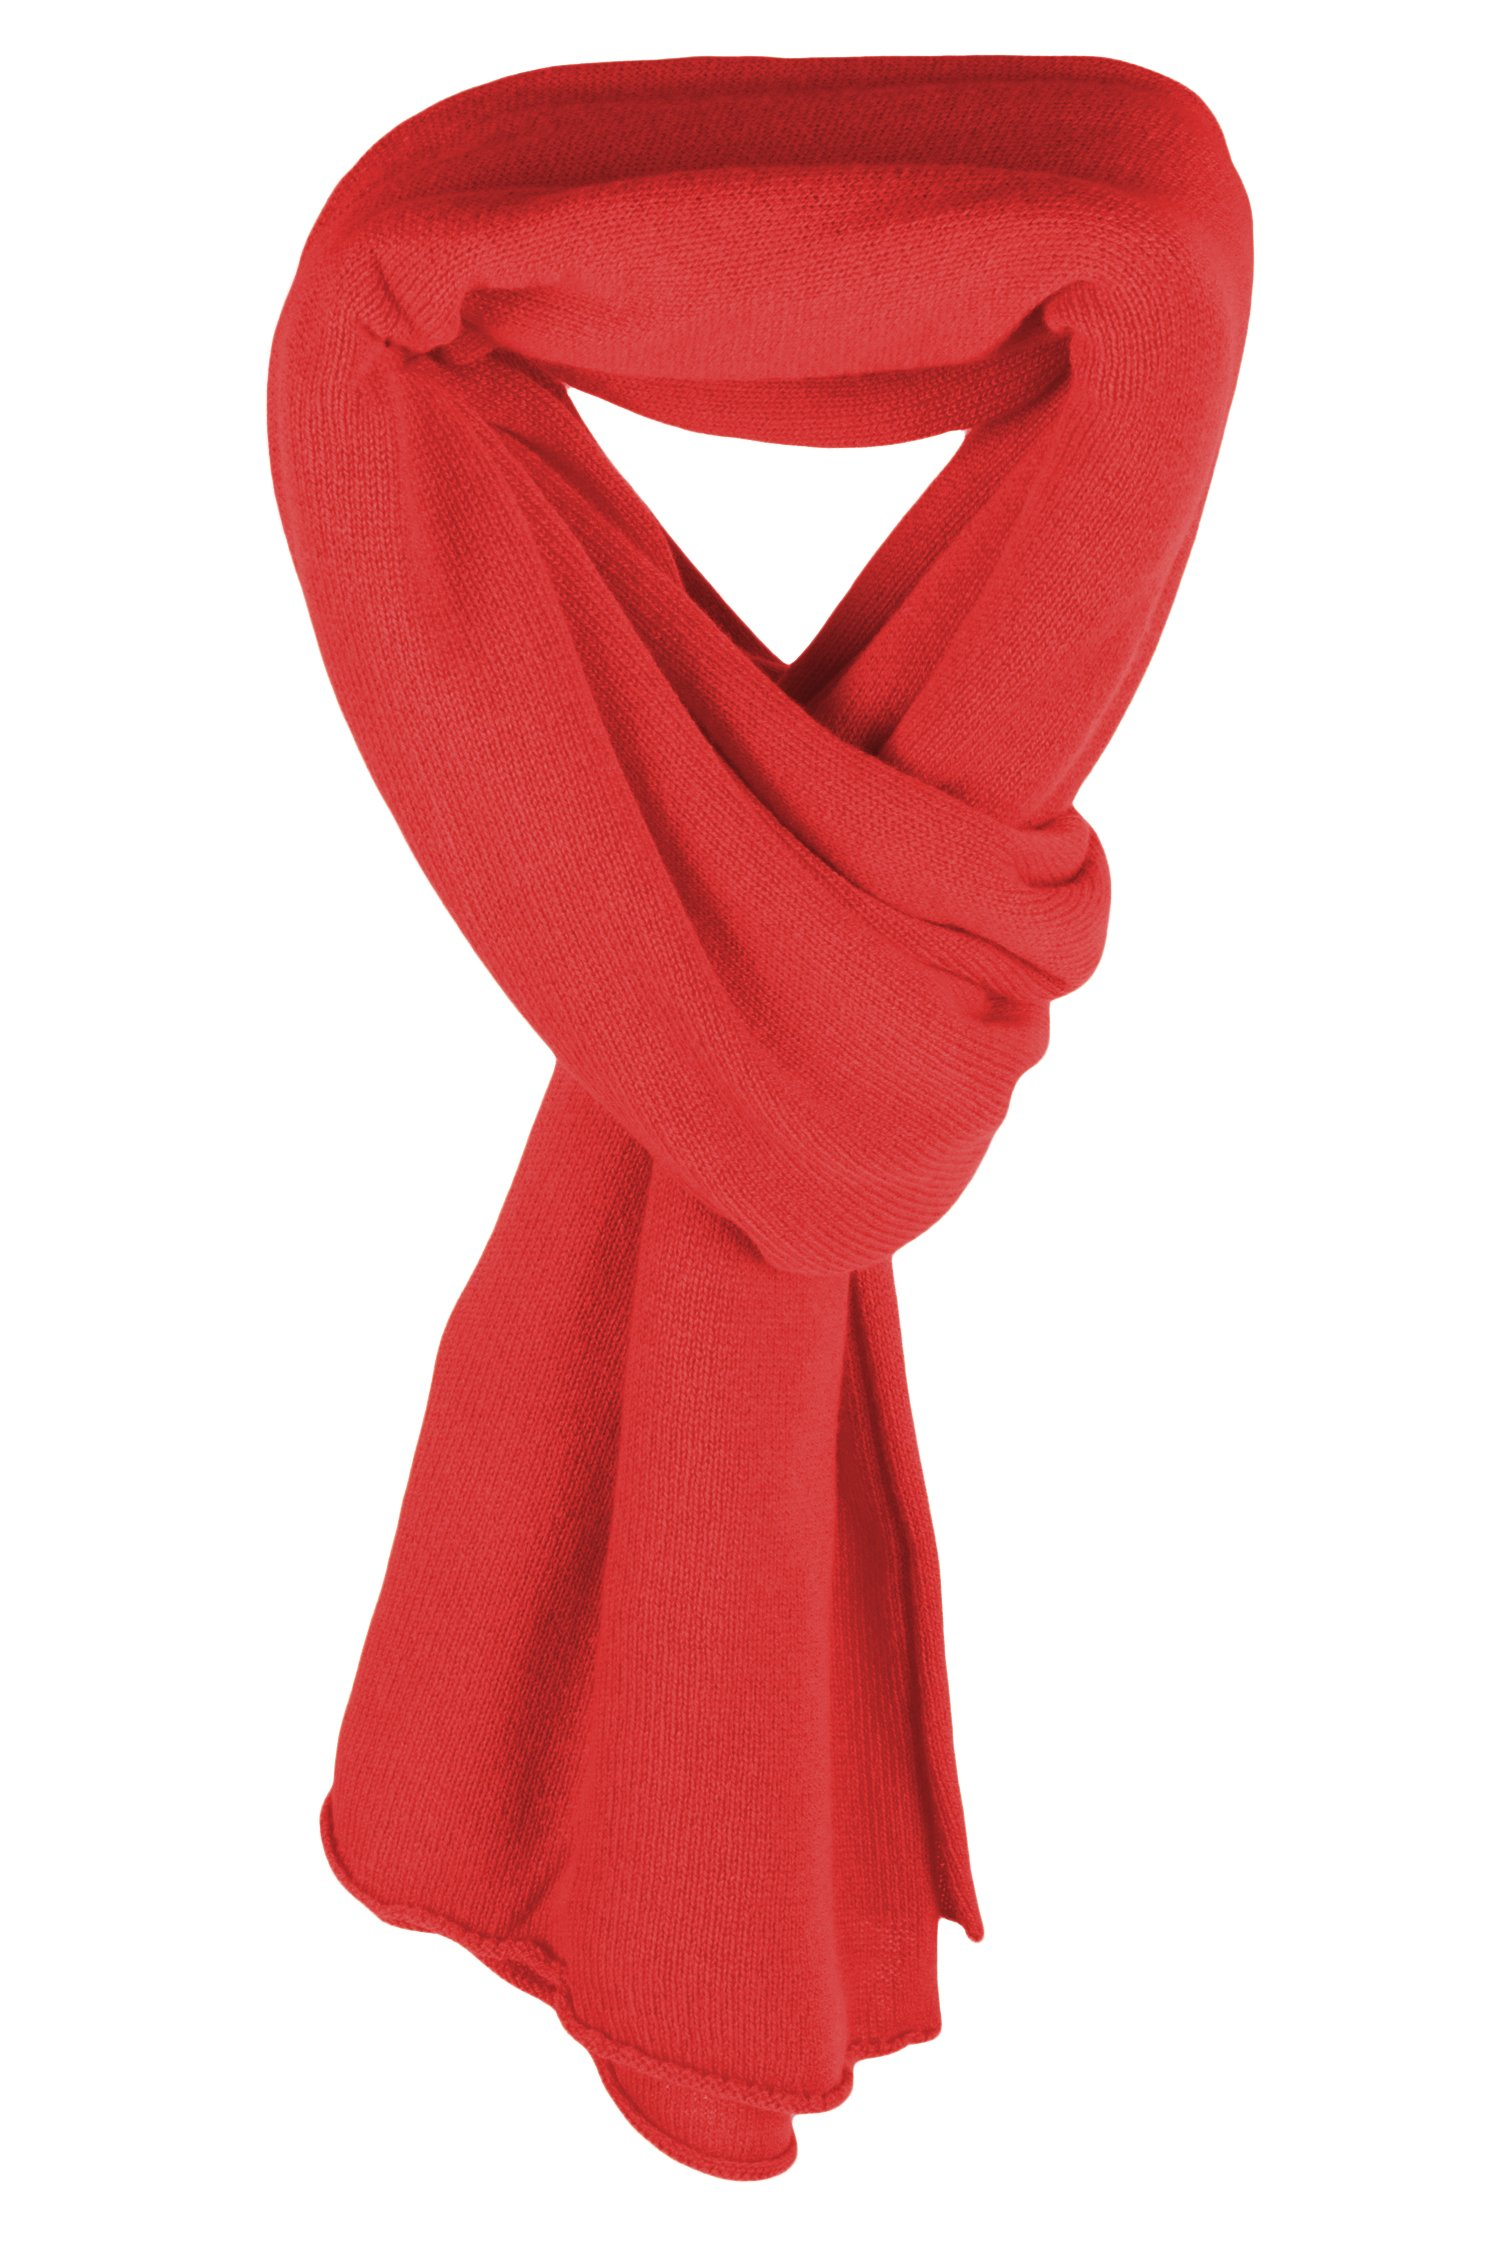 Ladies Ultrafine 100% Cashmere Scarf Wrap - Sorbet Red - made in Scotland by Love Cashmere RRP $400